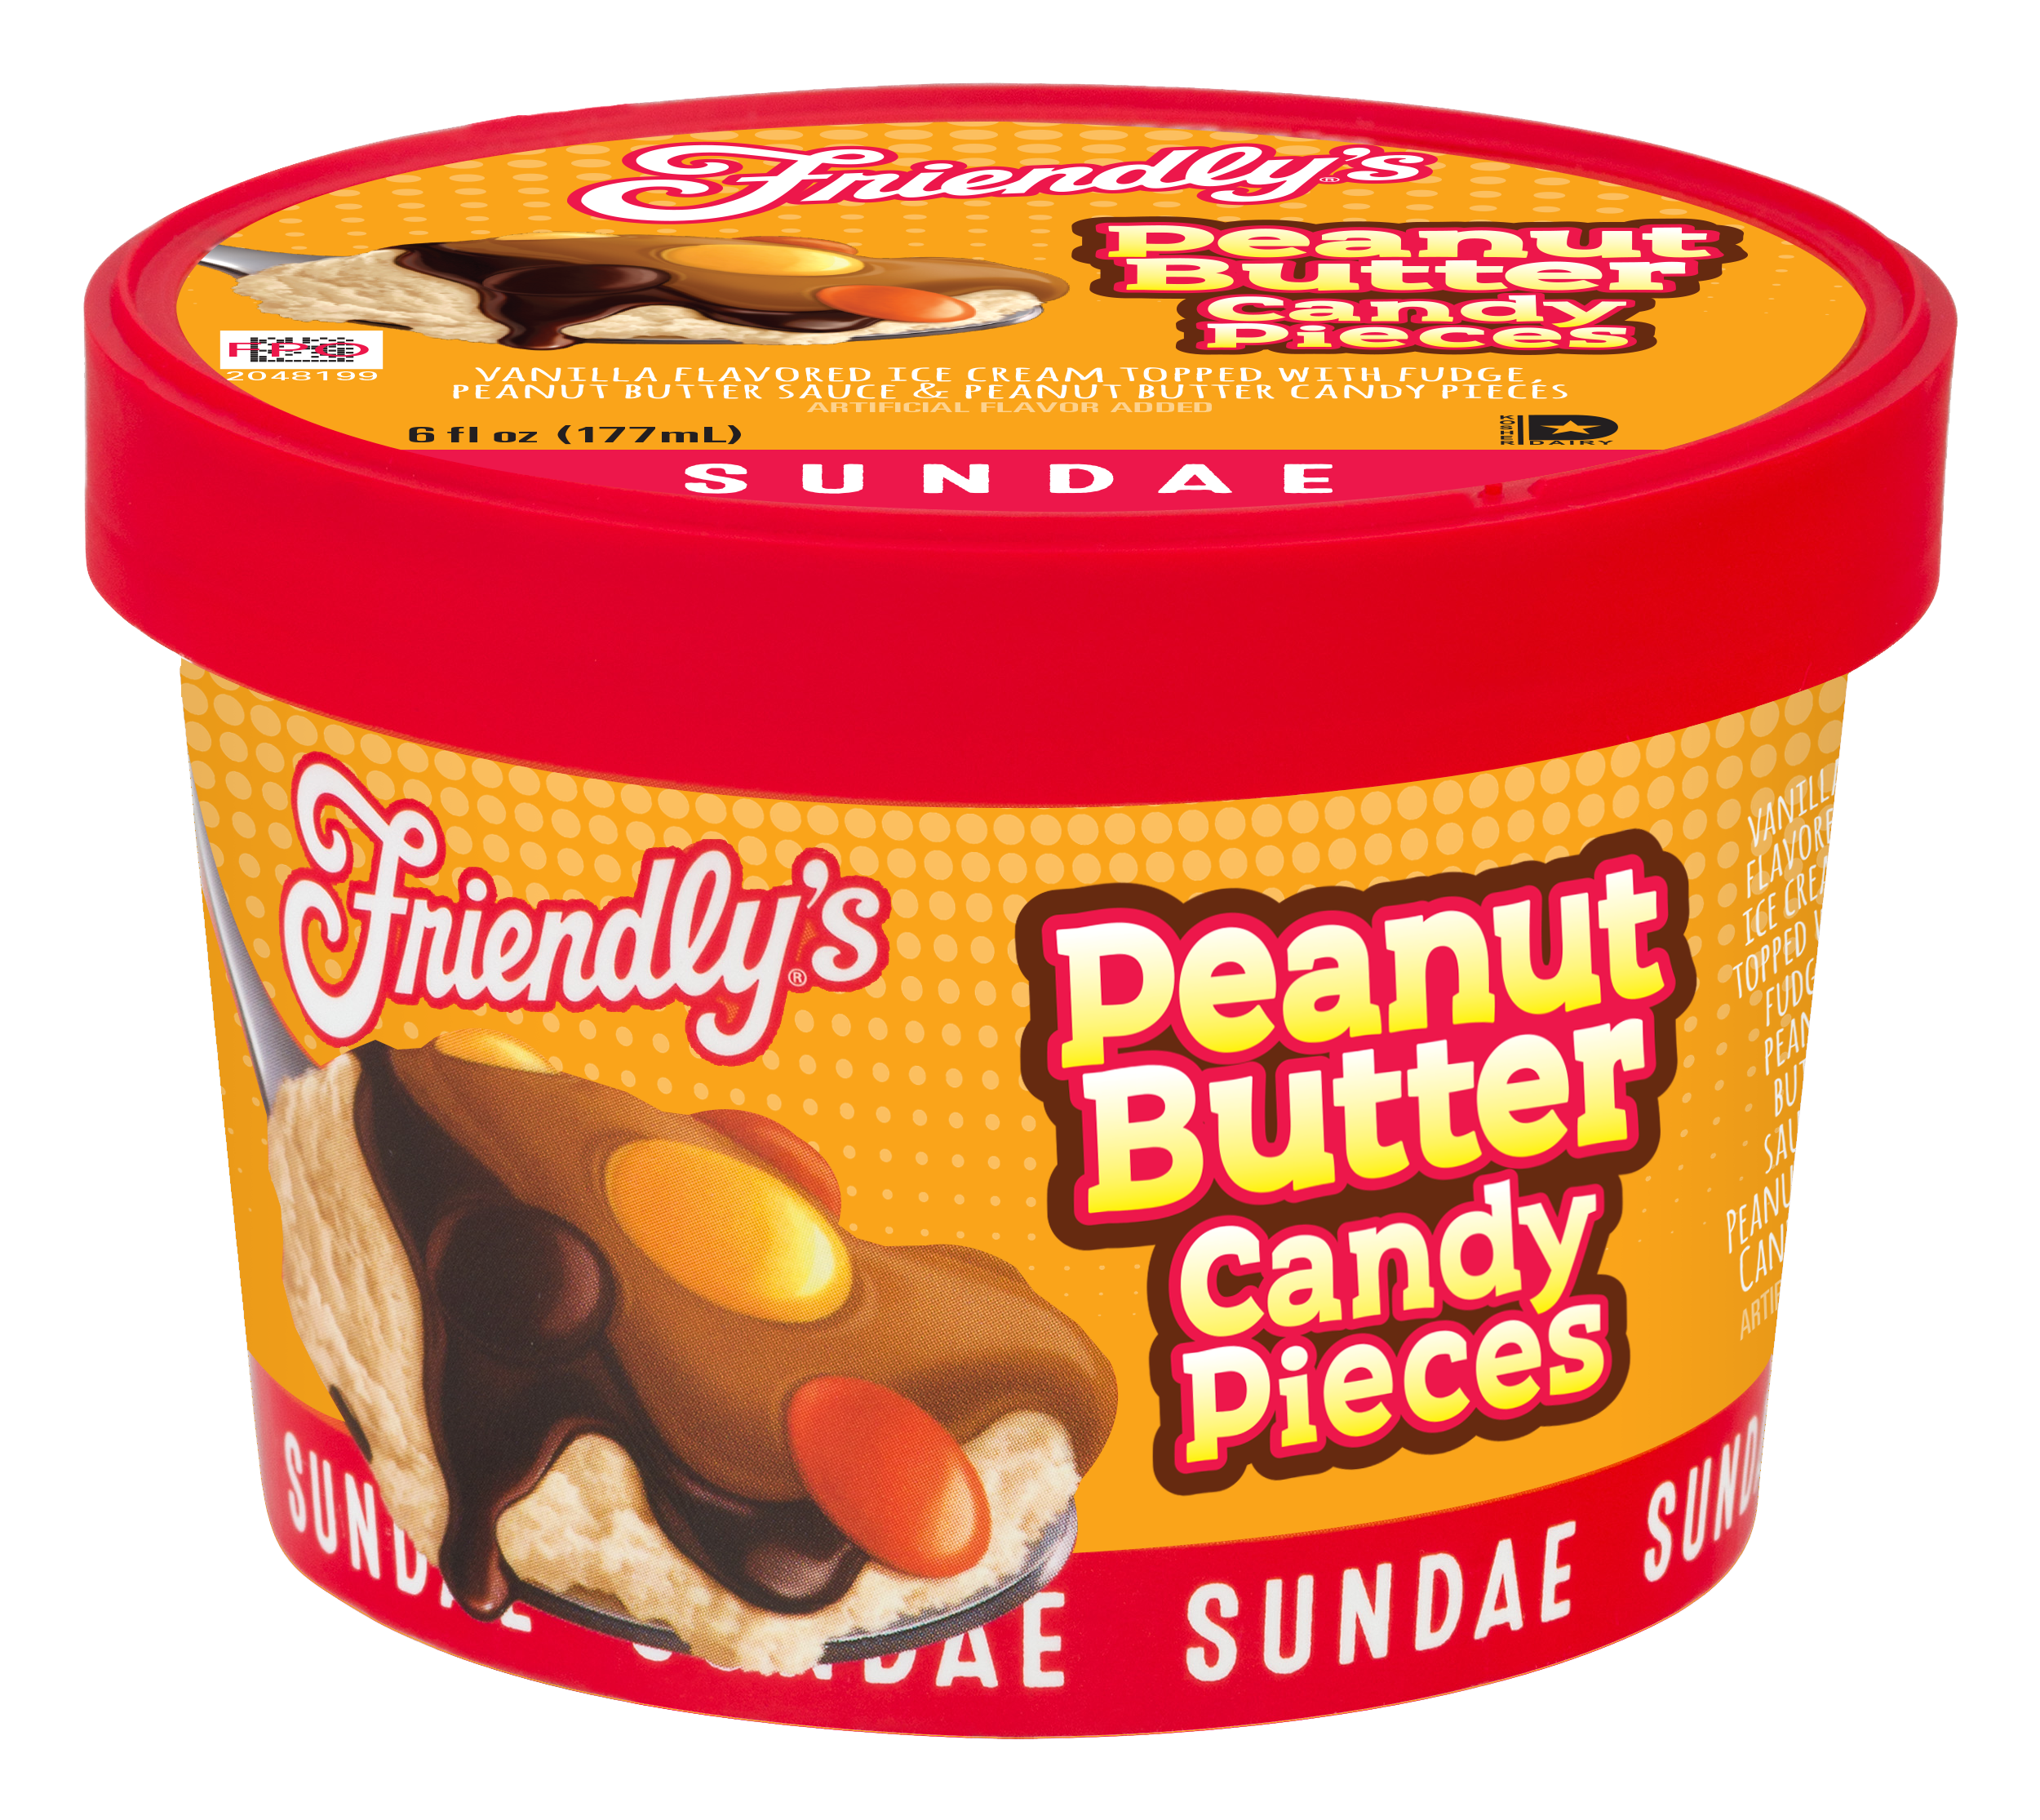 Peanut Butter Candy Pieces Sundae Cup